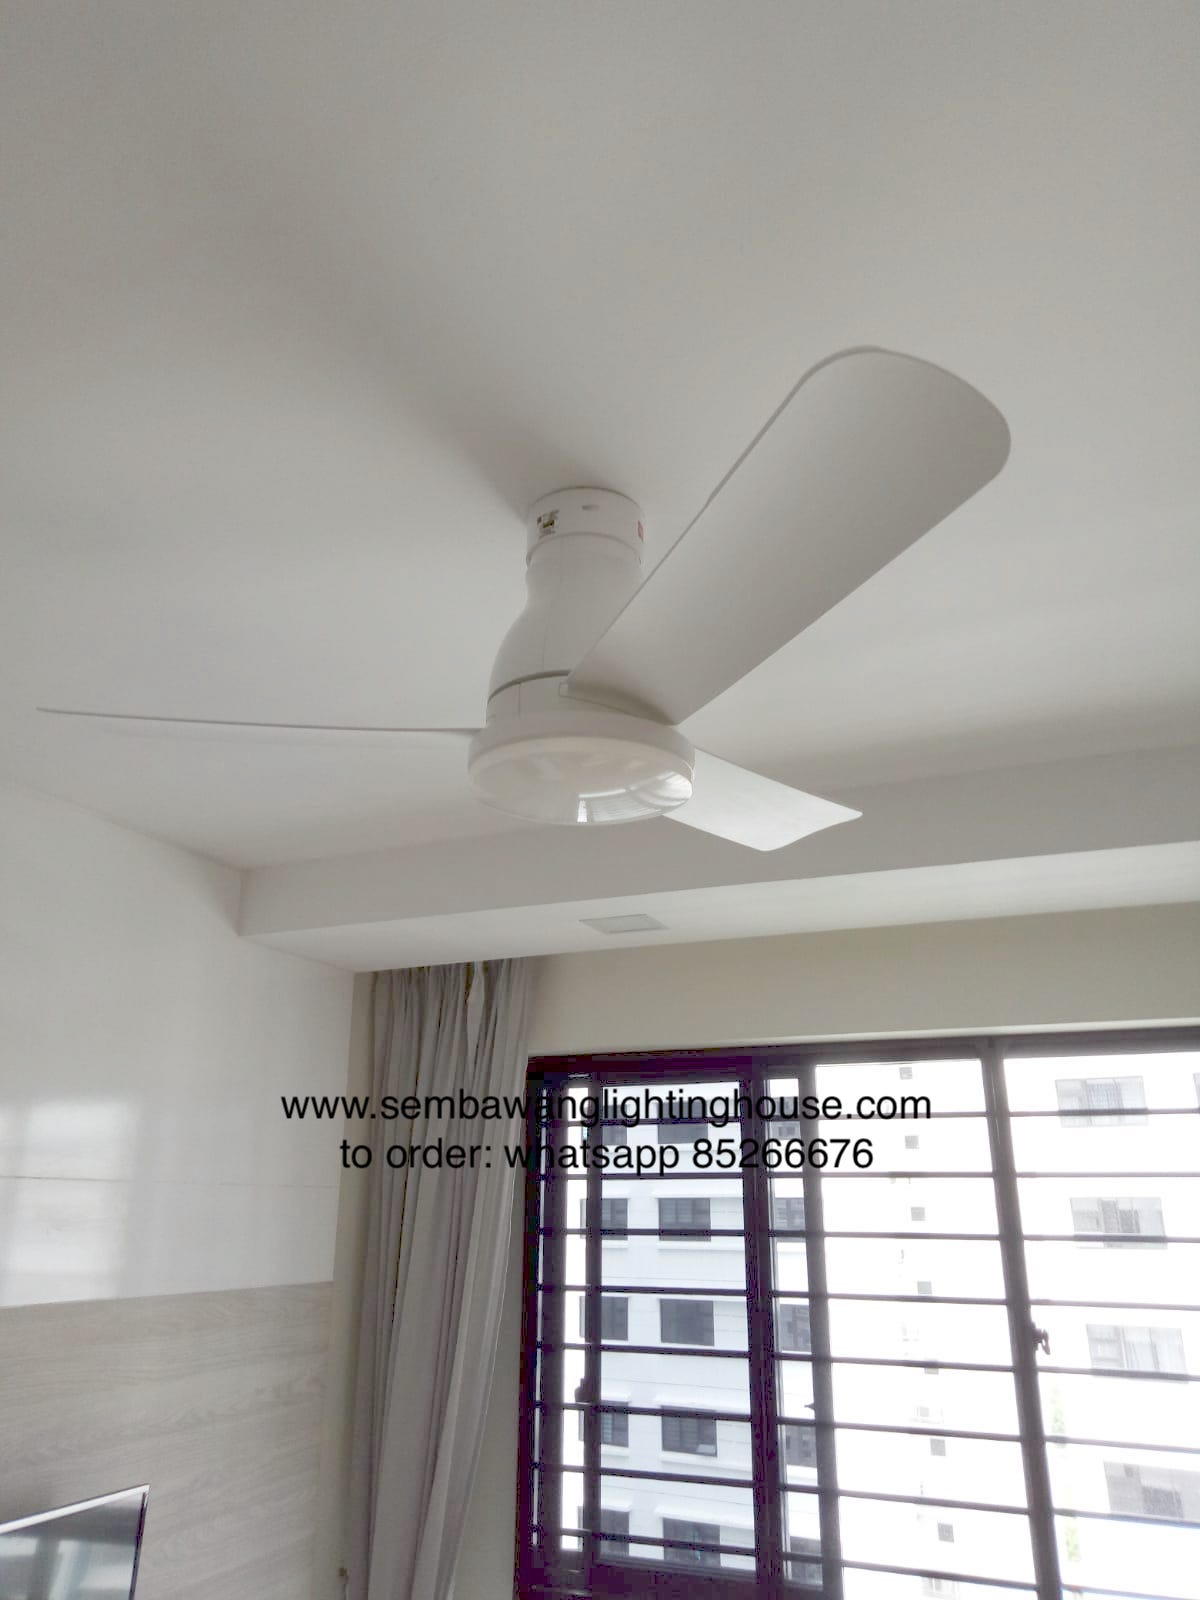 KDK U48FP white ceiling fan in bedroom | Sembawang Lighting House